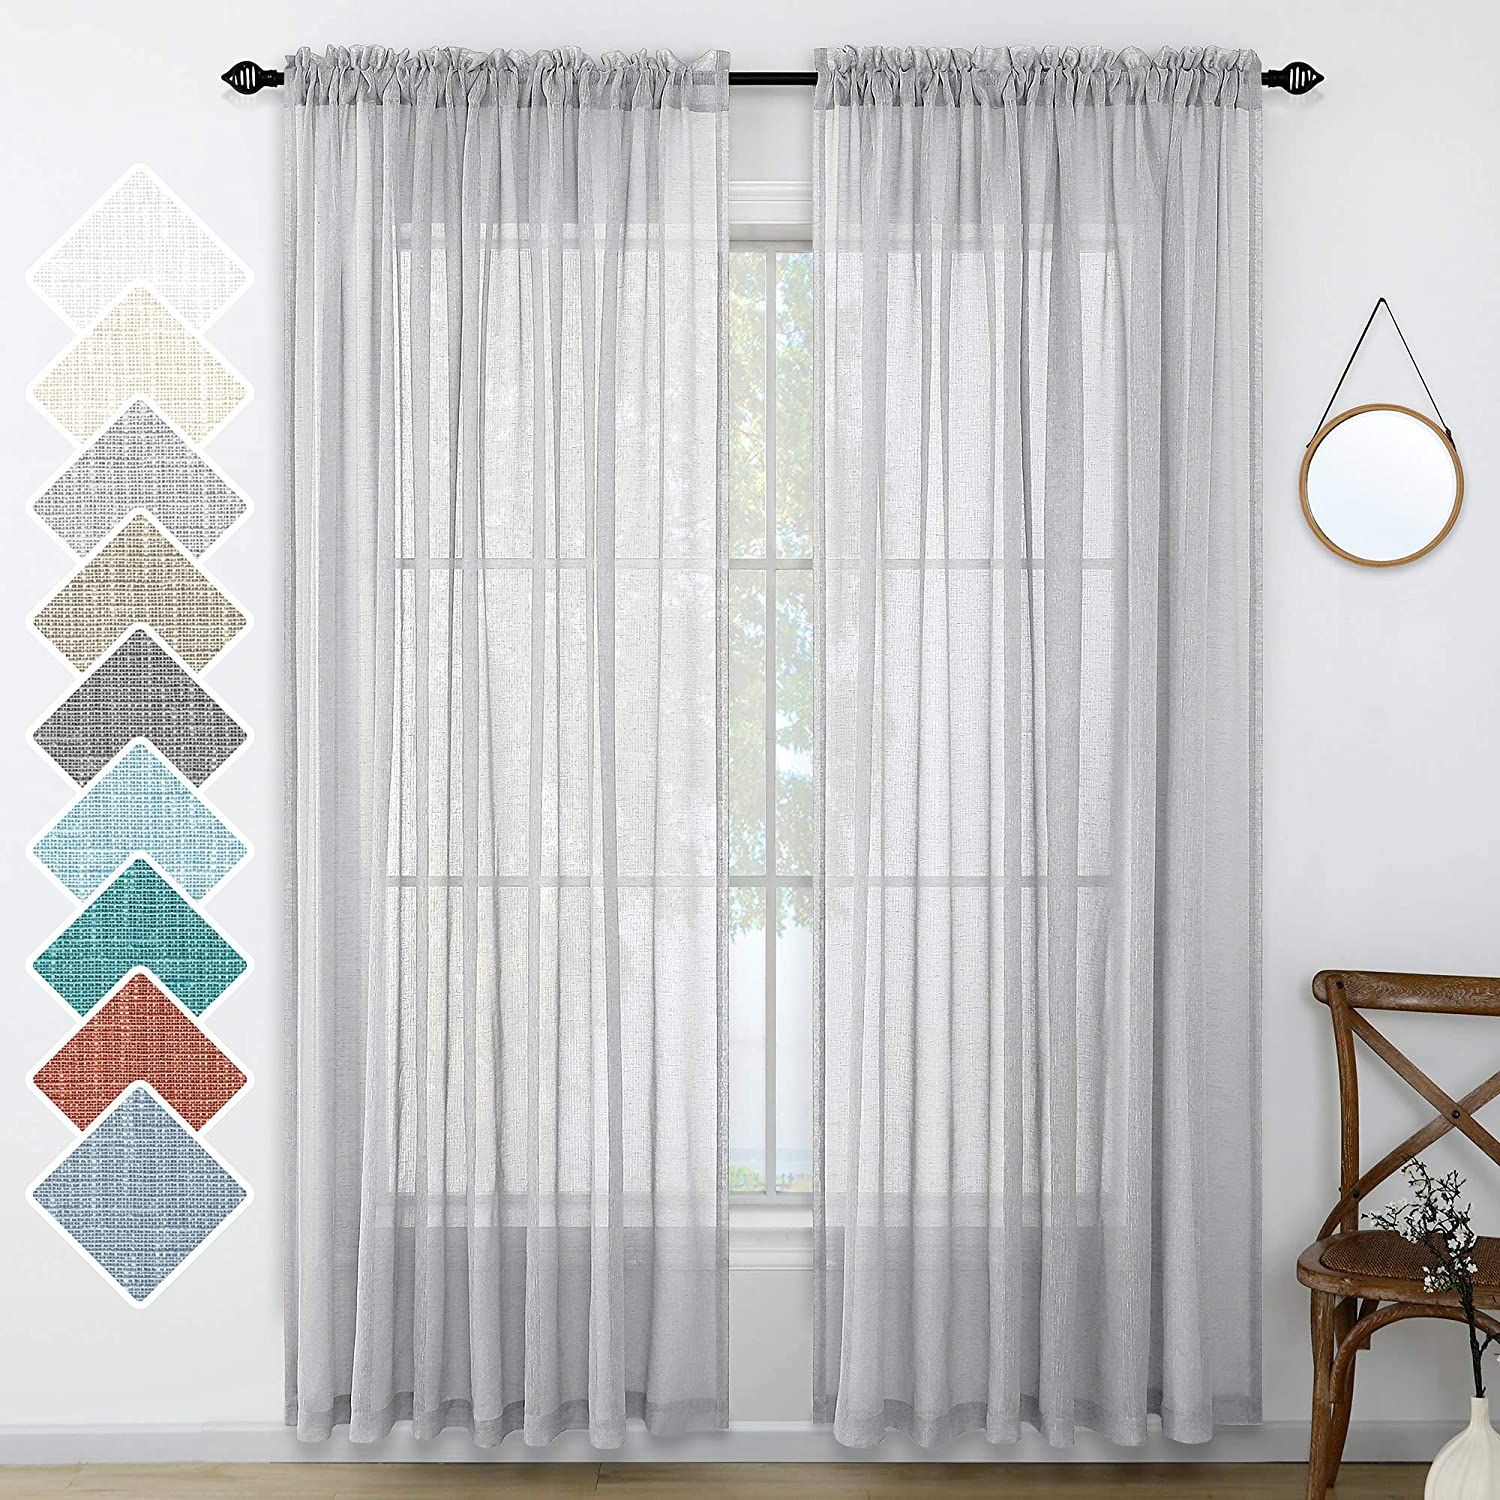 Gray Linen Look Curtains 96 Inches Long Set 2 Panels Rod Pocket Elegant Woven Textured Voile Sheer Drapes for Bedroom Living Room Patio Sliding Door Home Office Backdrop 52x96 Inch Length Silver Grey